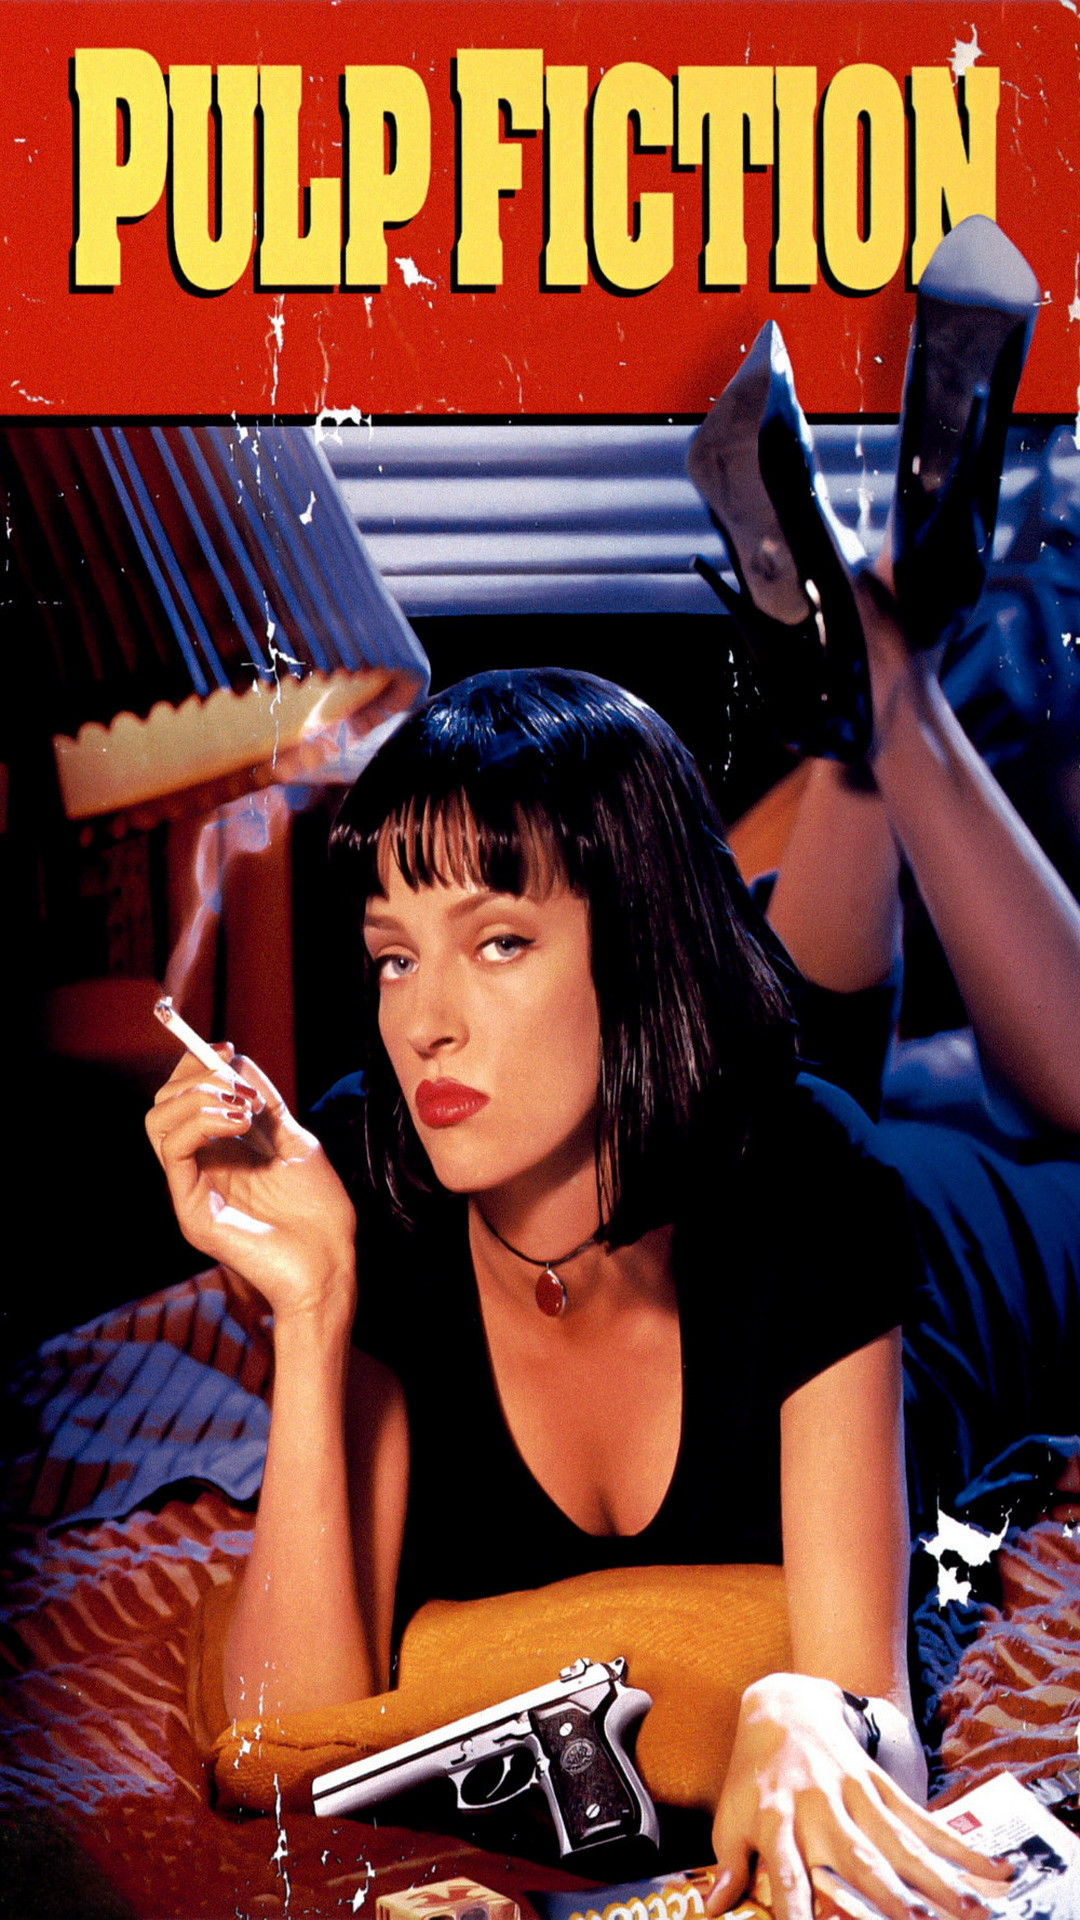 the superb editing in the movie pulp fiction by quentin tarantino Pulp fiction: how tarantino breaks the mold of the reactionary gangster in quentin tarantino's pulp fiction pulp fiction is the movie i couldn't explain why.